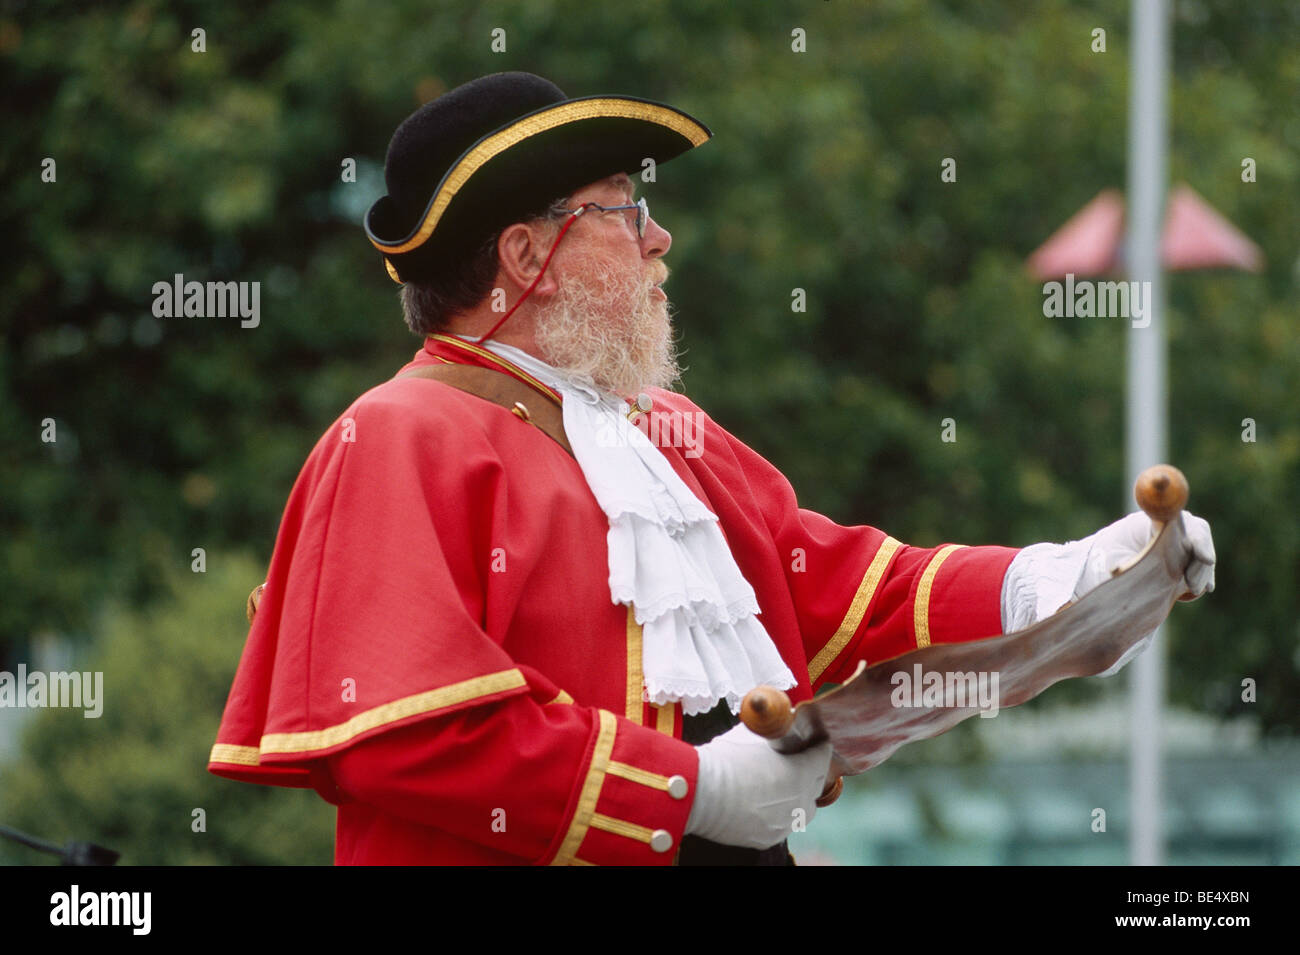 New Zealand - South Island - Canterbury - Christchurch - Town Crier - Stock Image